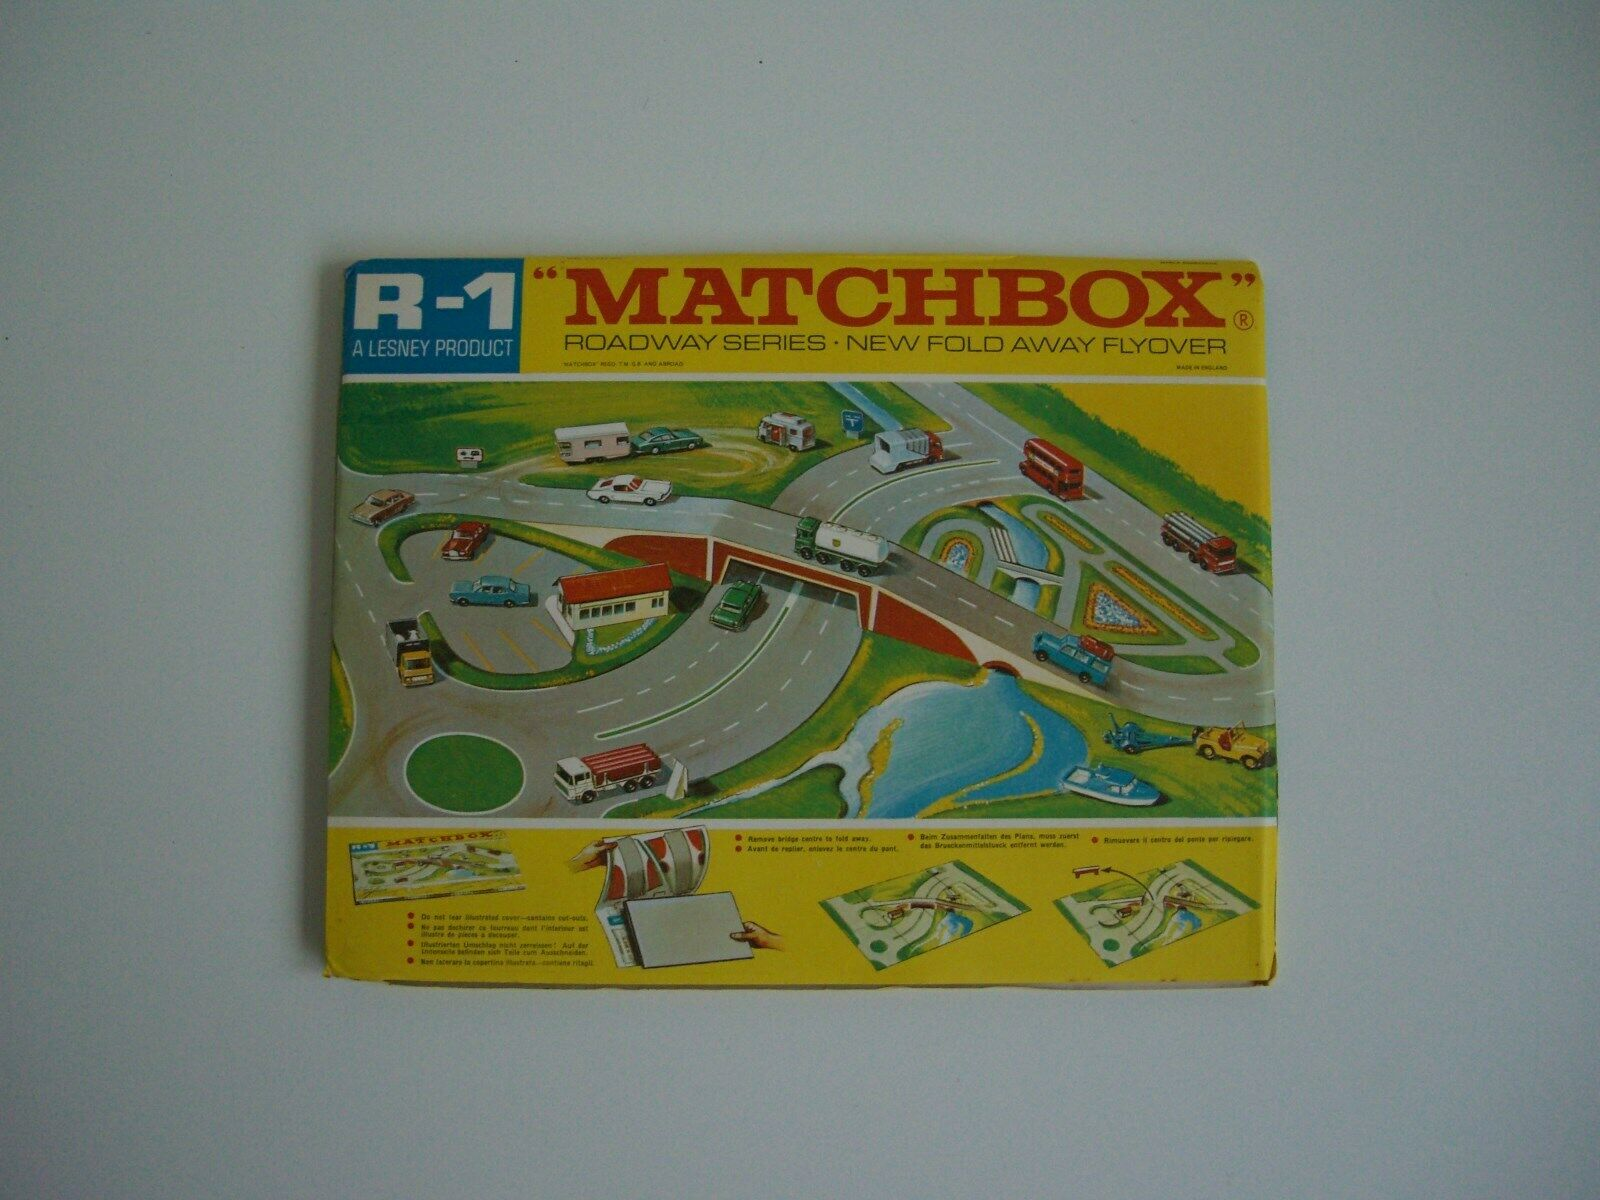 Matchbox R-1 layout - Pristine, but no wrapping.